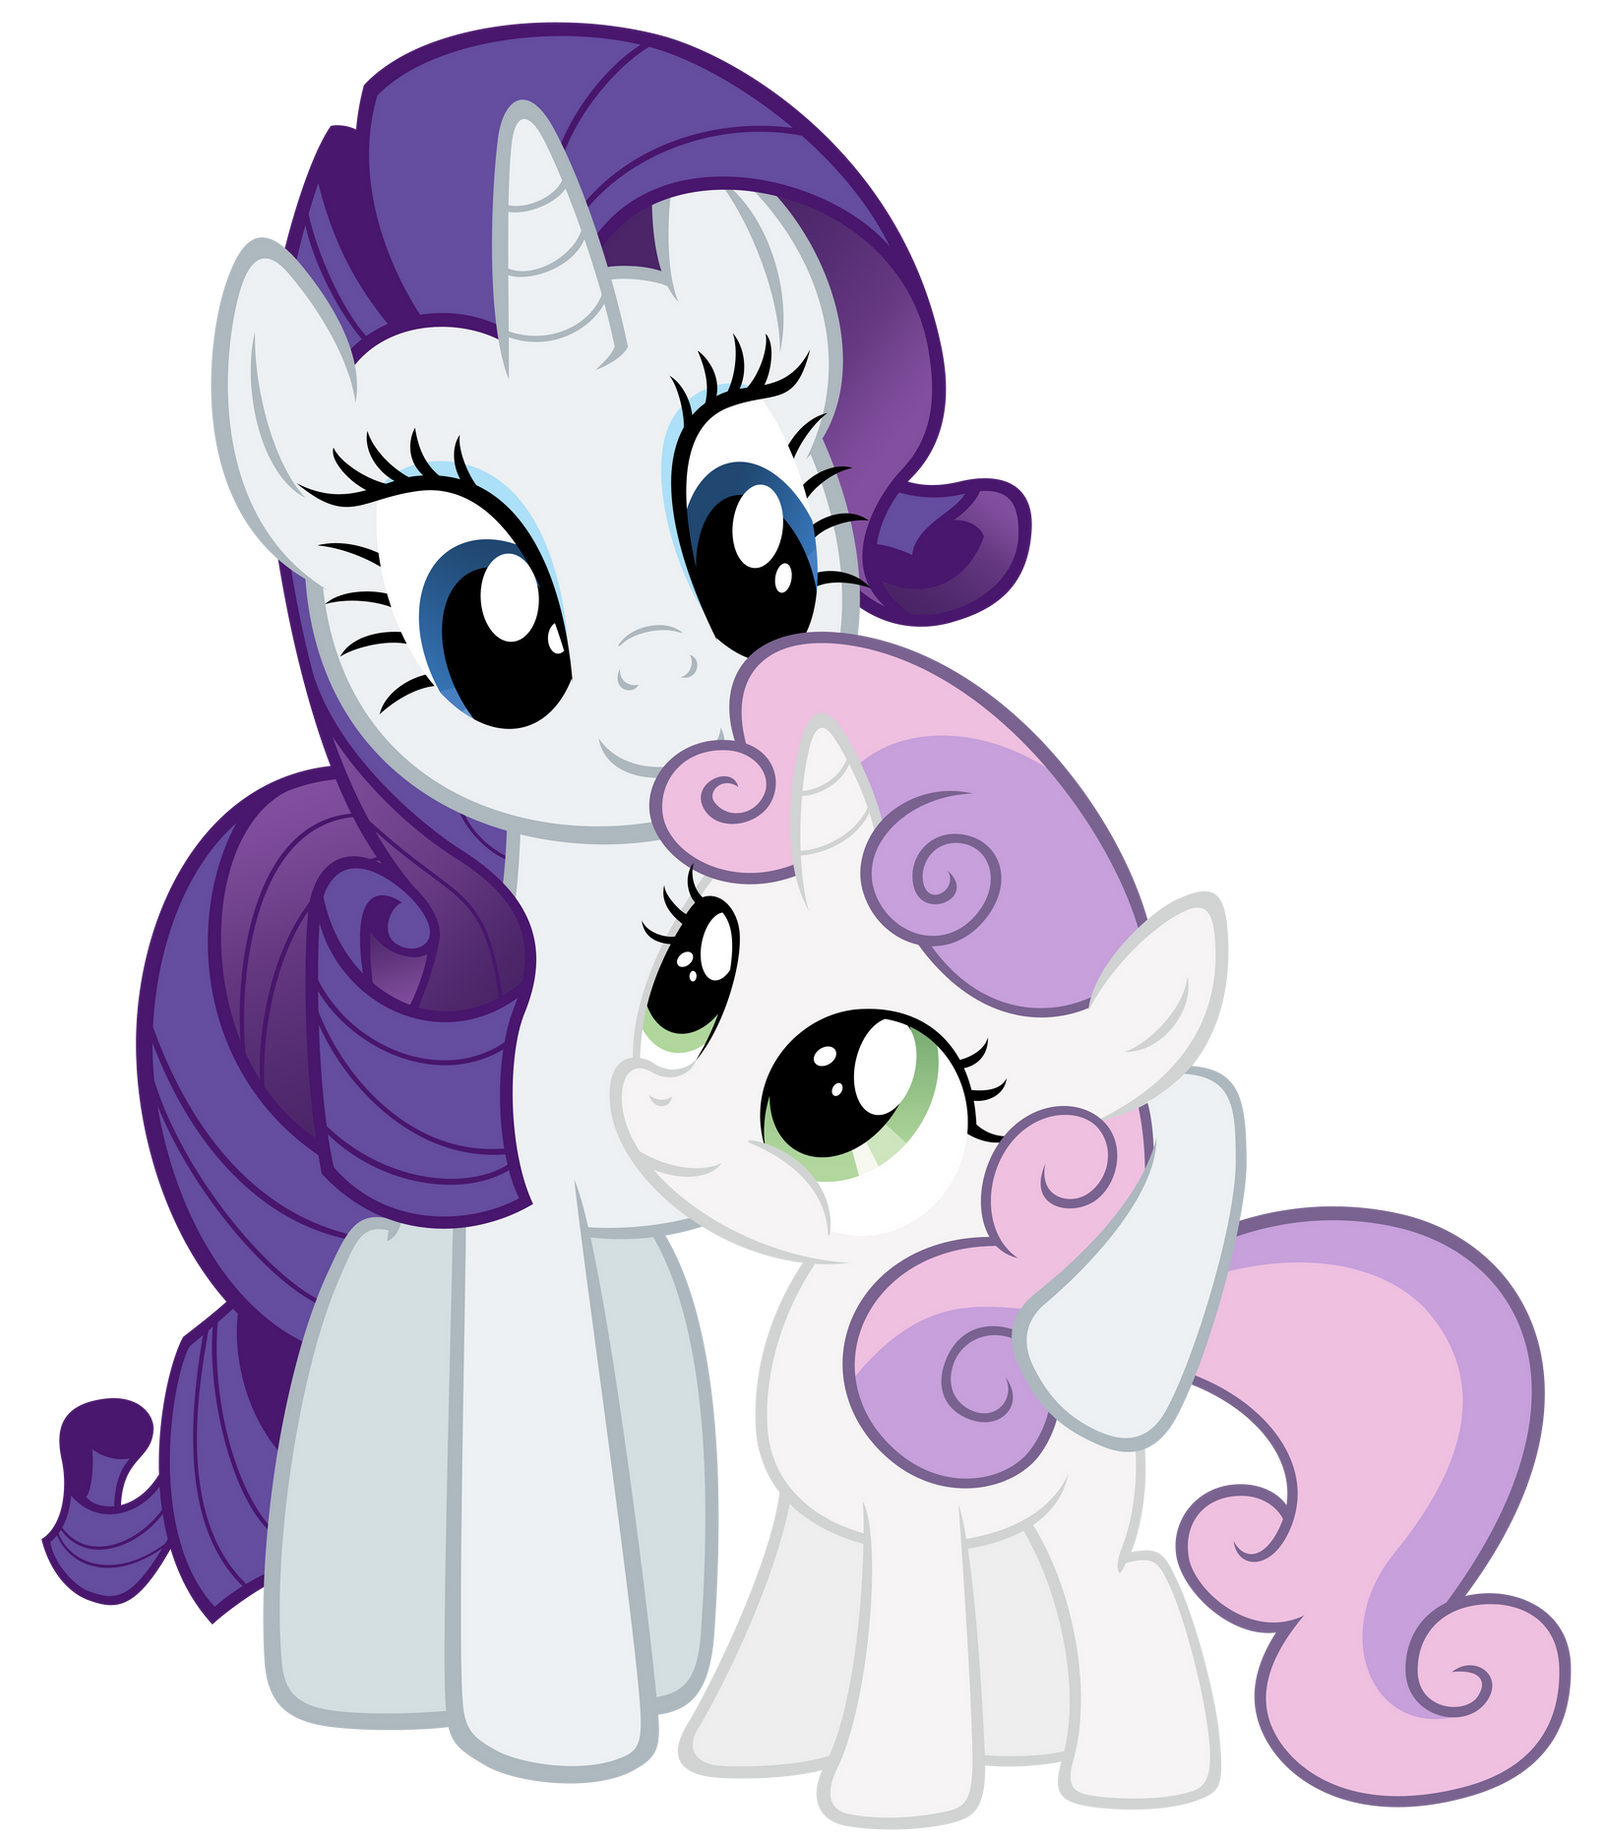 Rarity and Sweetie Belle being cute by Stabzor